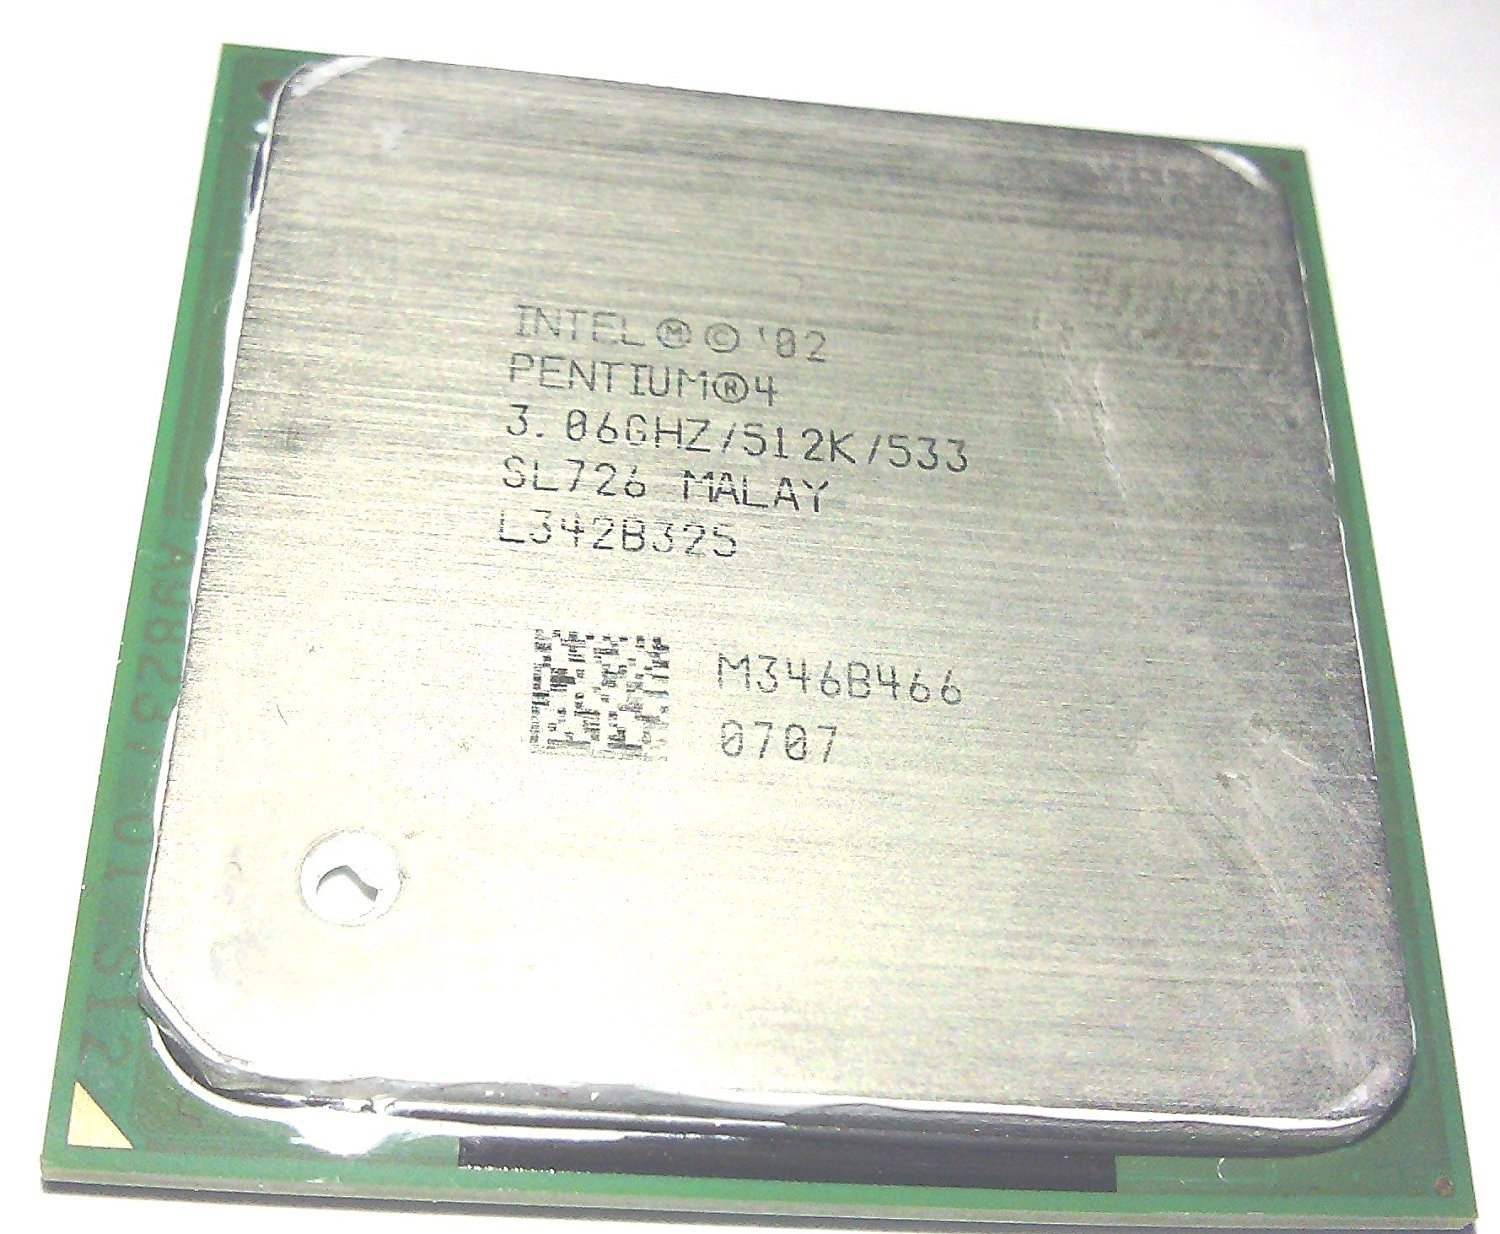 Cheap 478 Socket Pentium 4 Find Deals On Line Processor Intel Get Quotations M 306ghz Cpu With 512kb Cache 533mhz Fsb